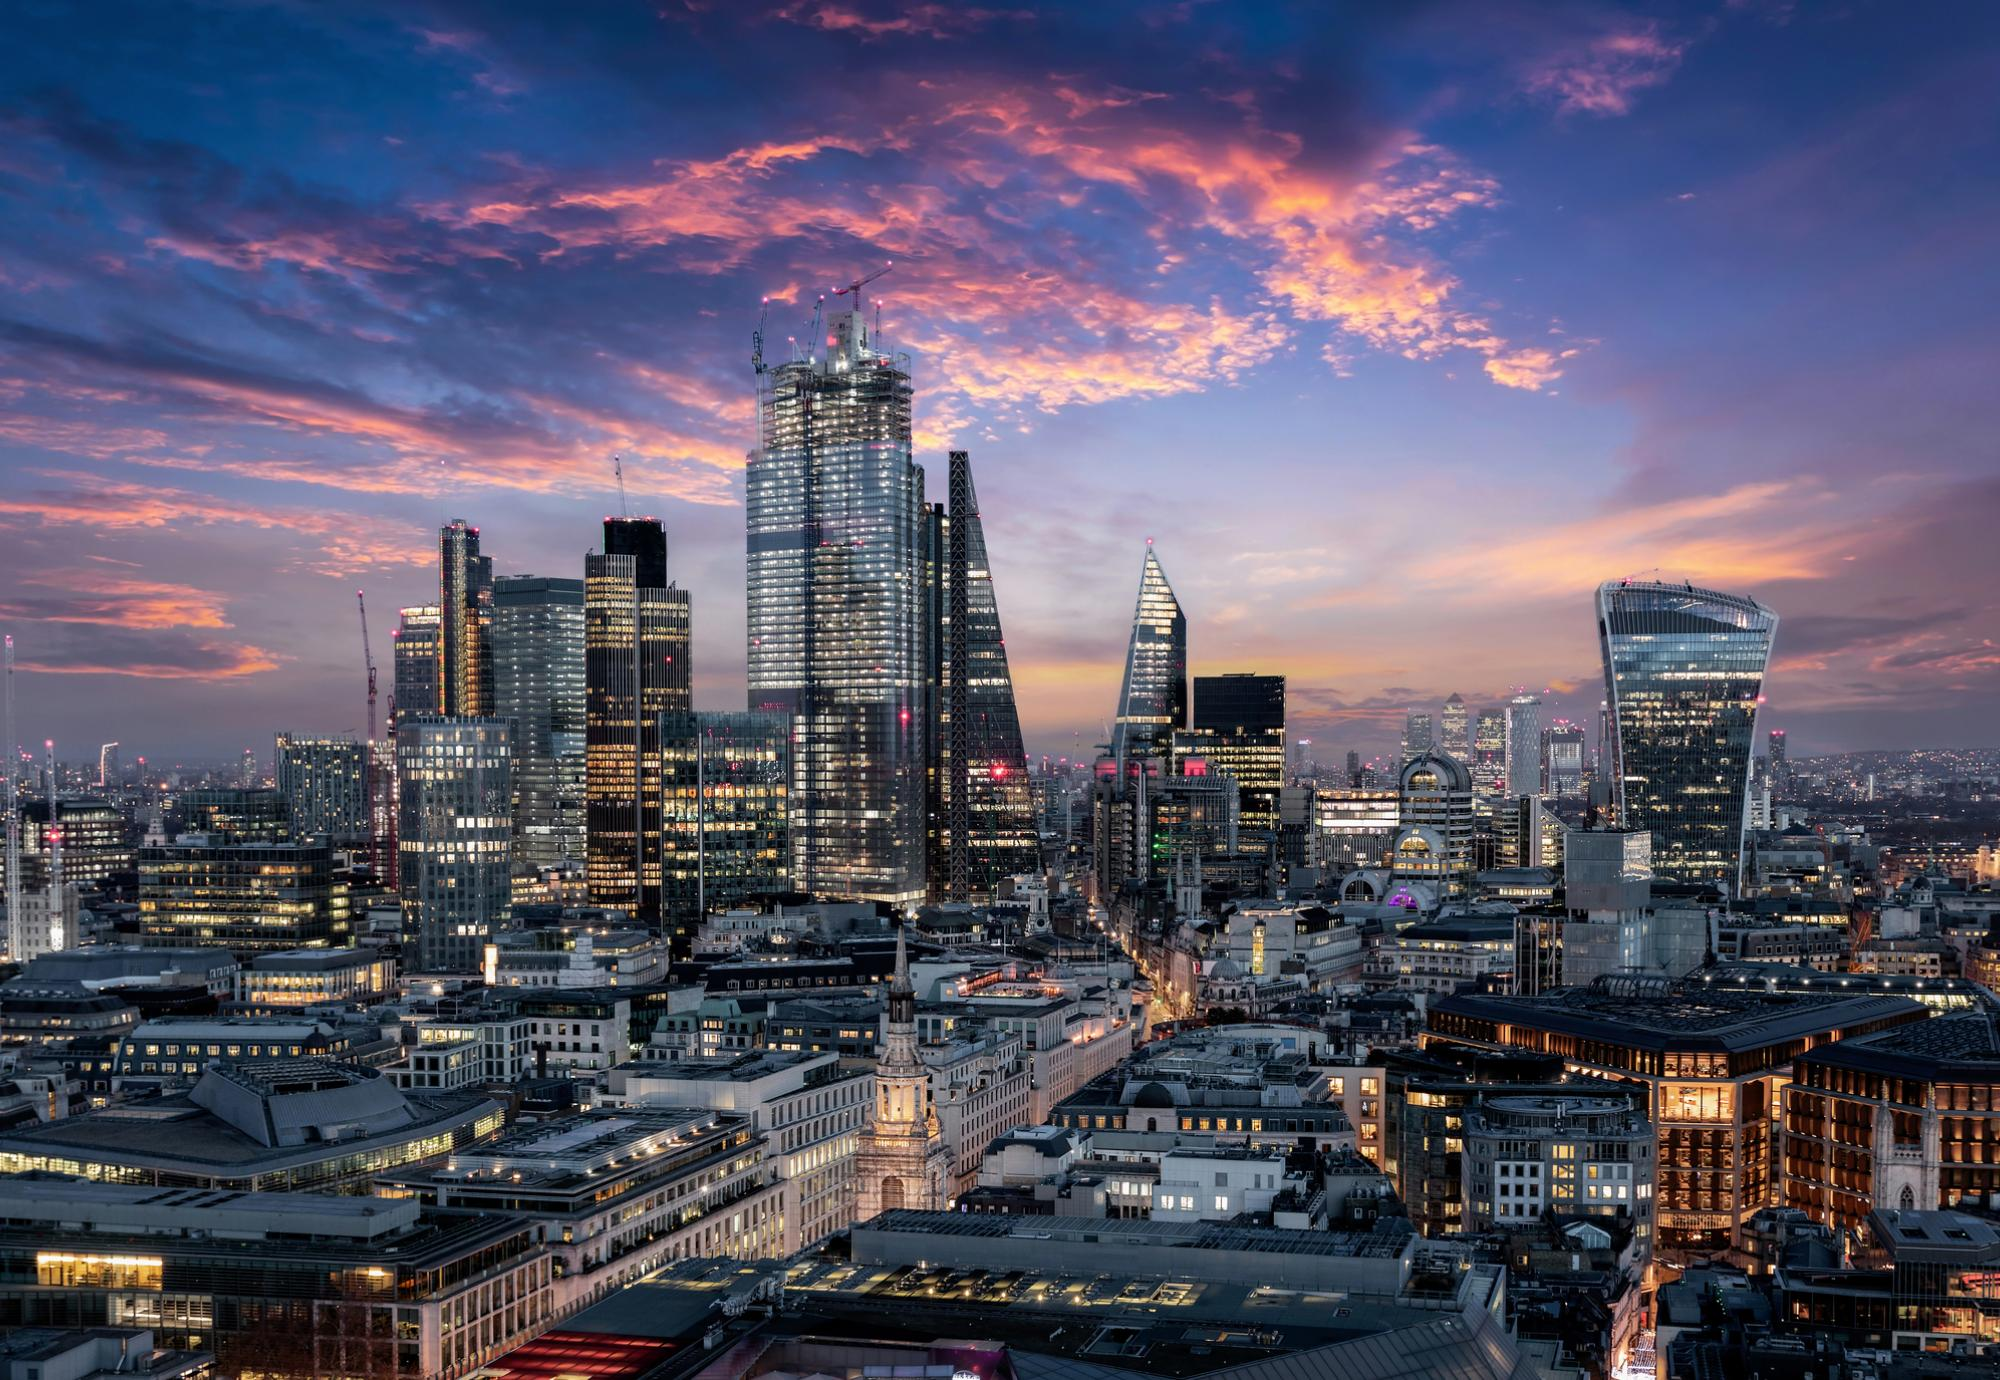 Picture of London's financial district at night.